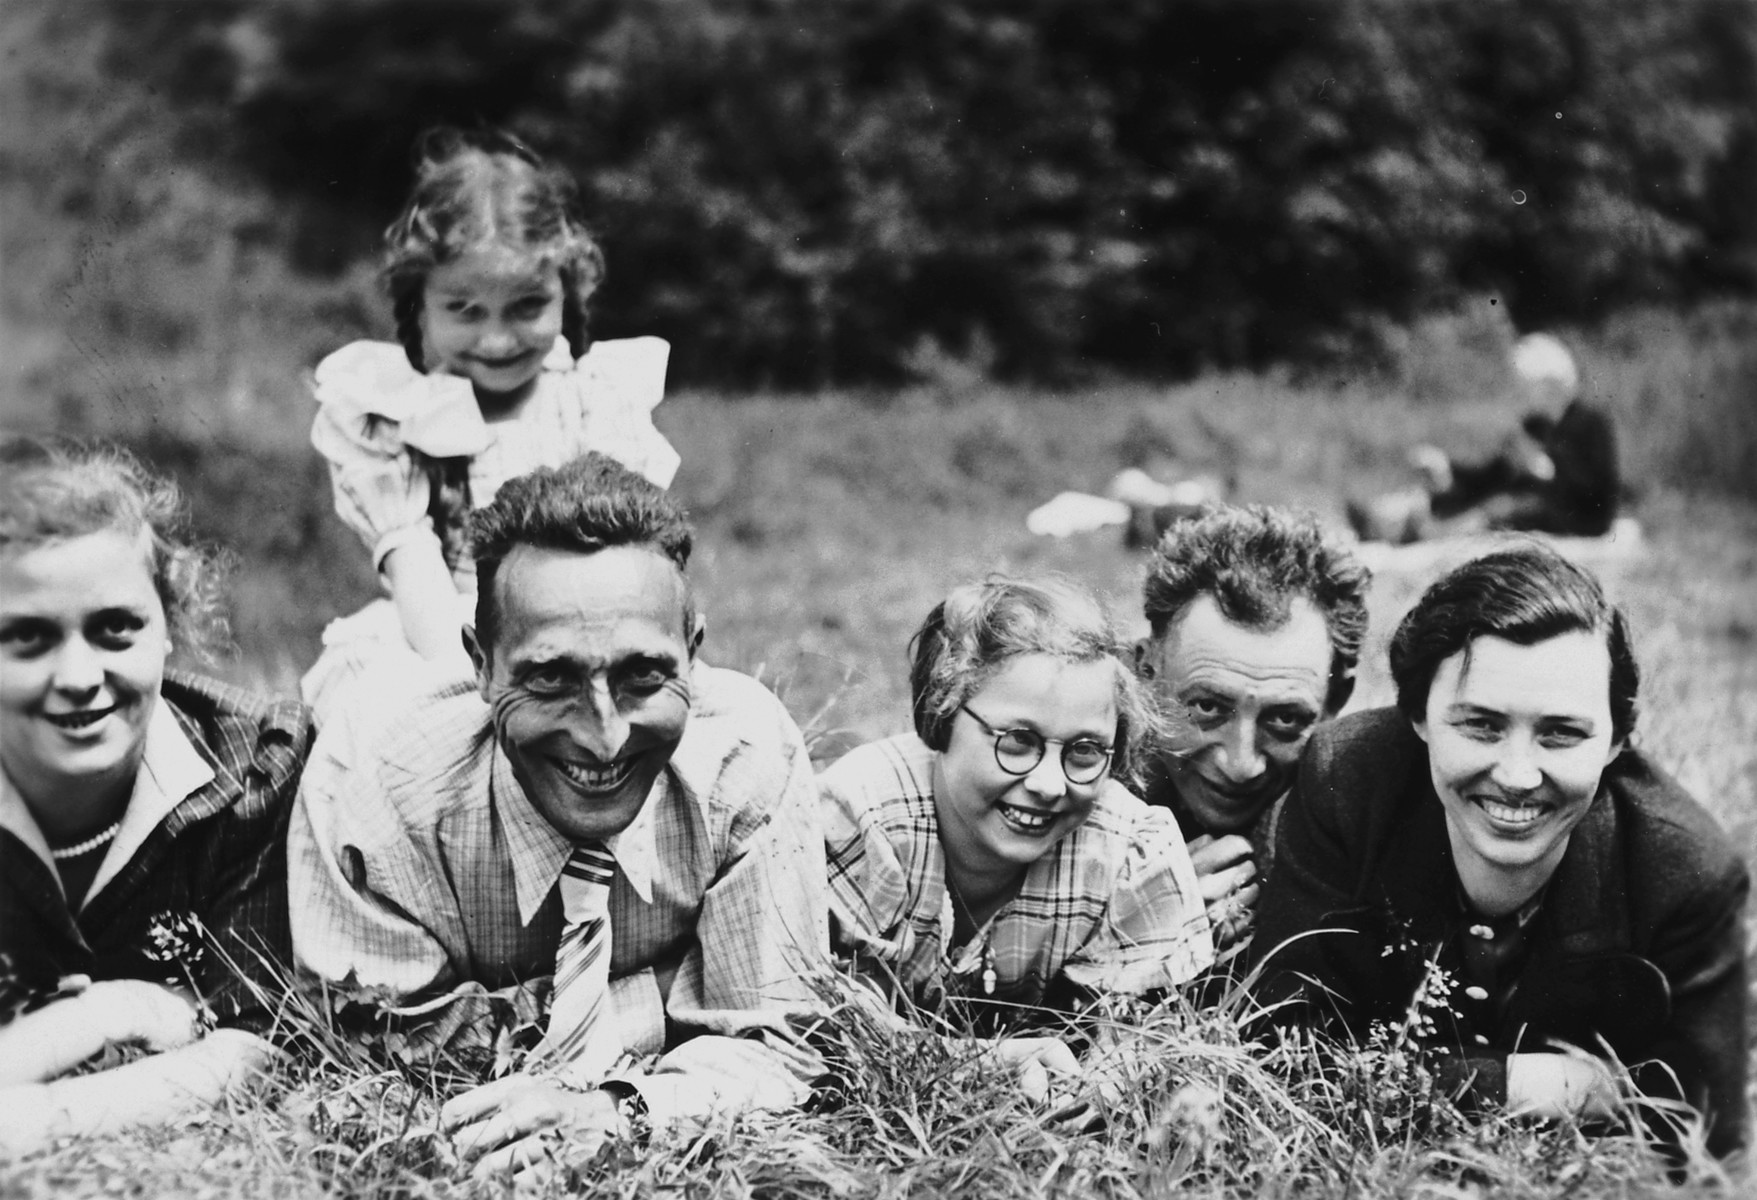 An intermarried German-Jewish family poses for a pictures while on a Sunday walk in the woods with Jewish friends.  Pictured on the left are Margot, Aloisia, Richard and Hannelore Schwarzschild.